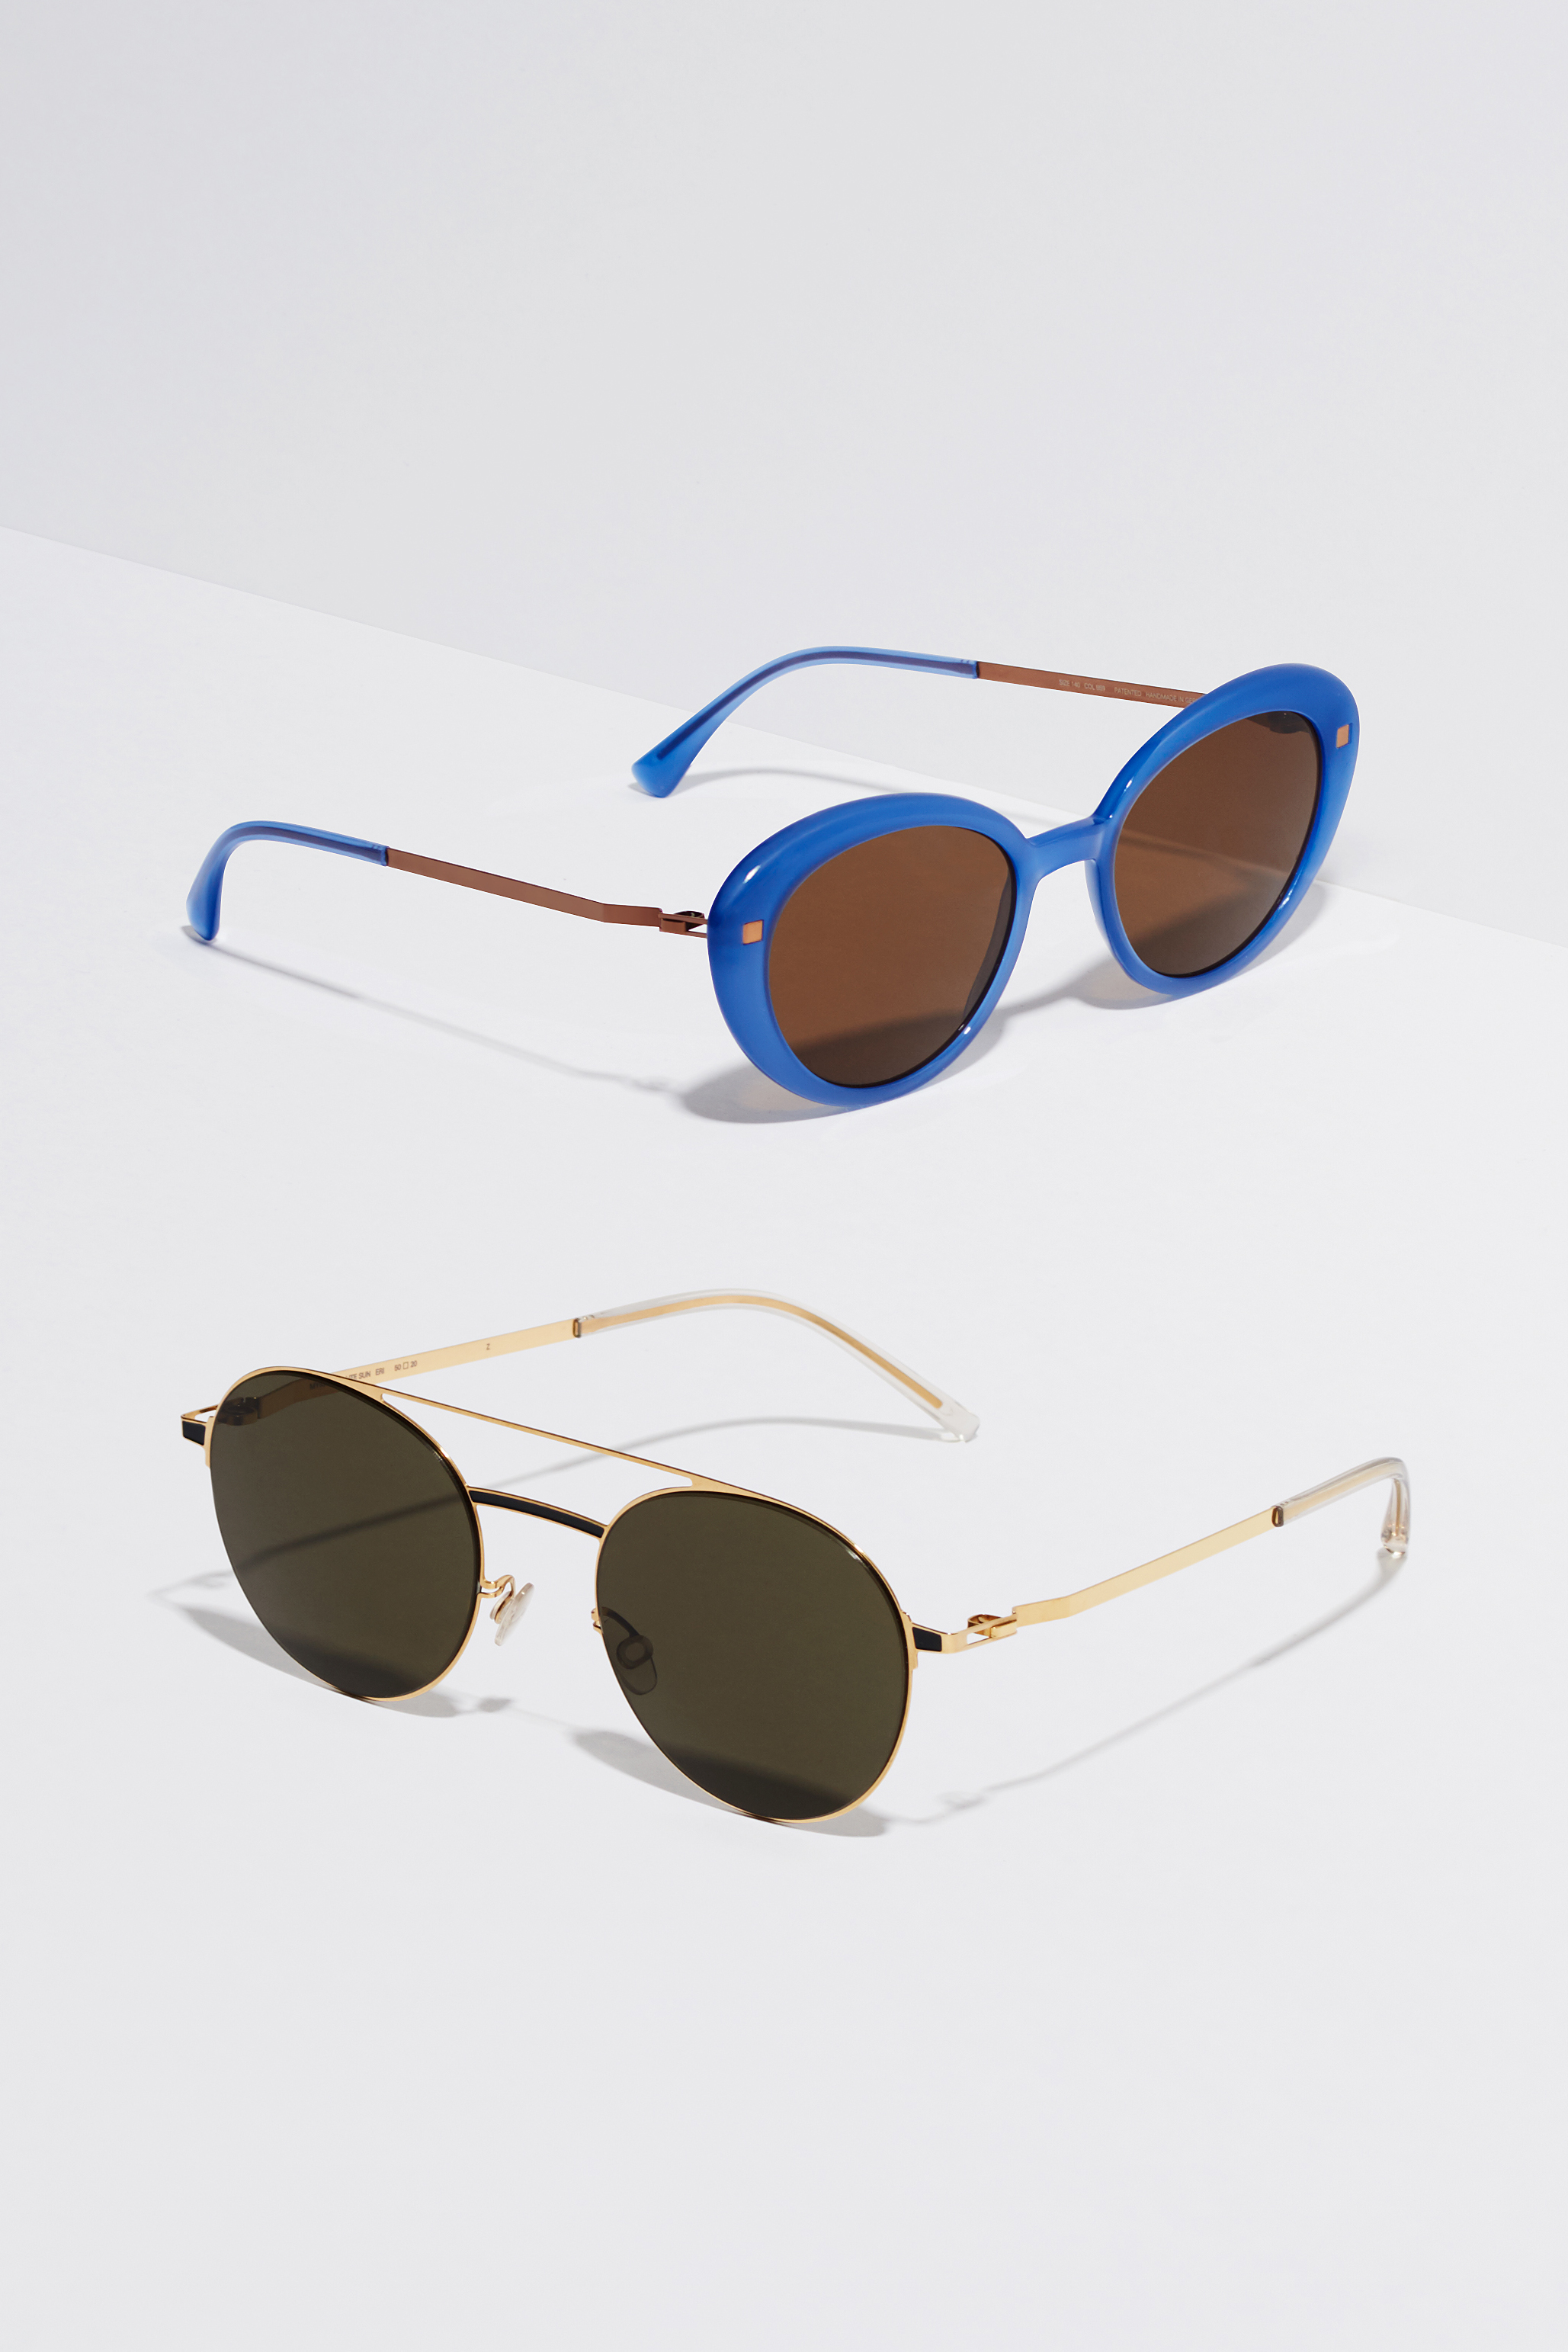 dd9bc6977a MYKITA Lite Acetate Sun Luava C88 Misty Blue Shiny Copper Brown Solid  MYKITA Lite Acetate Sun